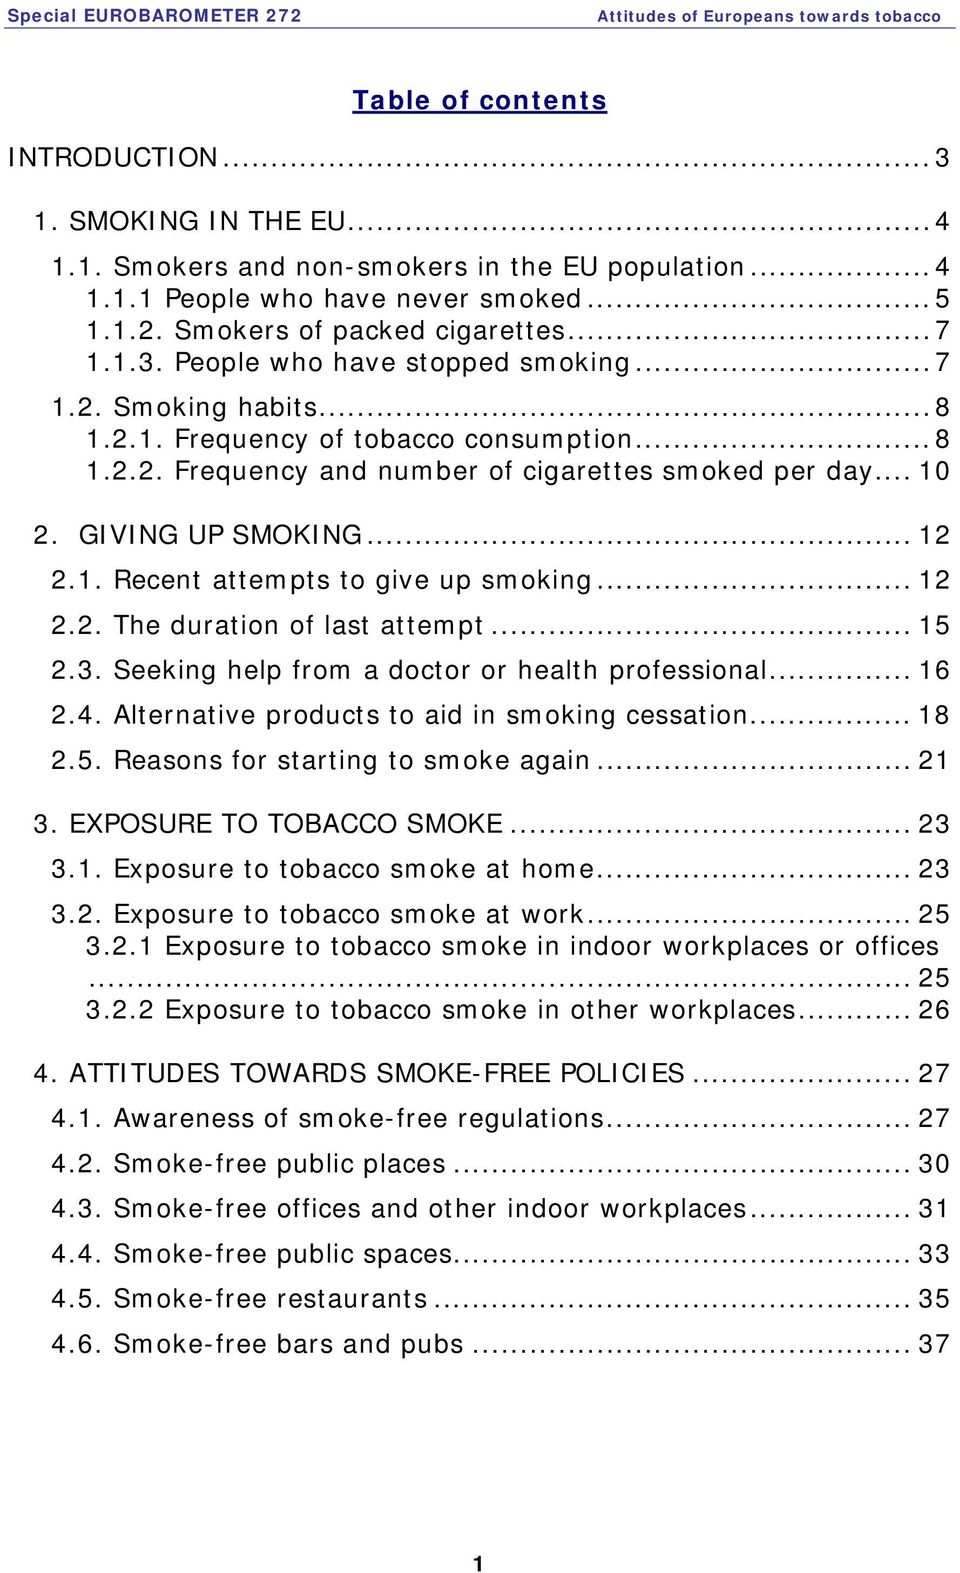 .. 12 2.2. The duration of last attempt... 15 2.3. Seeking help from a doctor or health professional... 16 2.4. Alternative products to aid in smoking cessation... 18 2.5. Reasons for starting to smoke again.